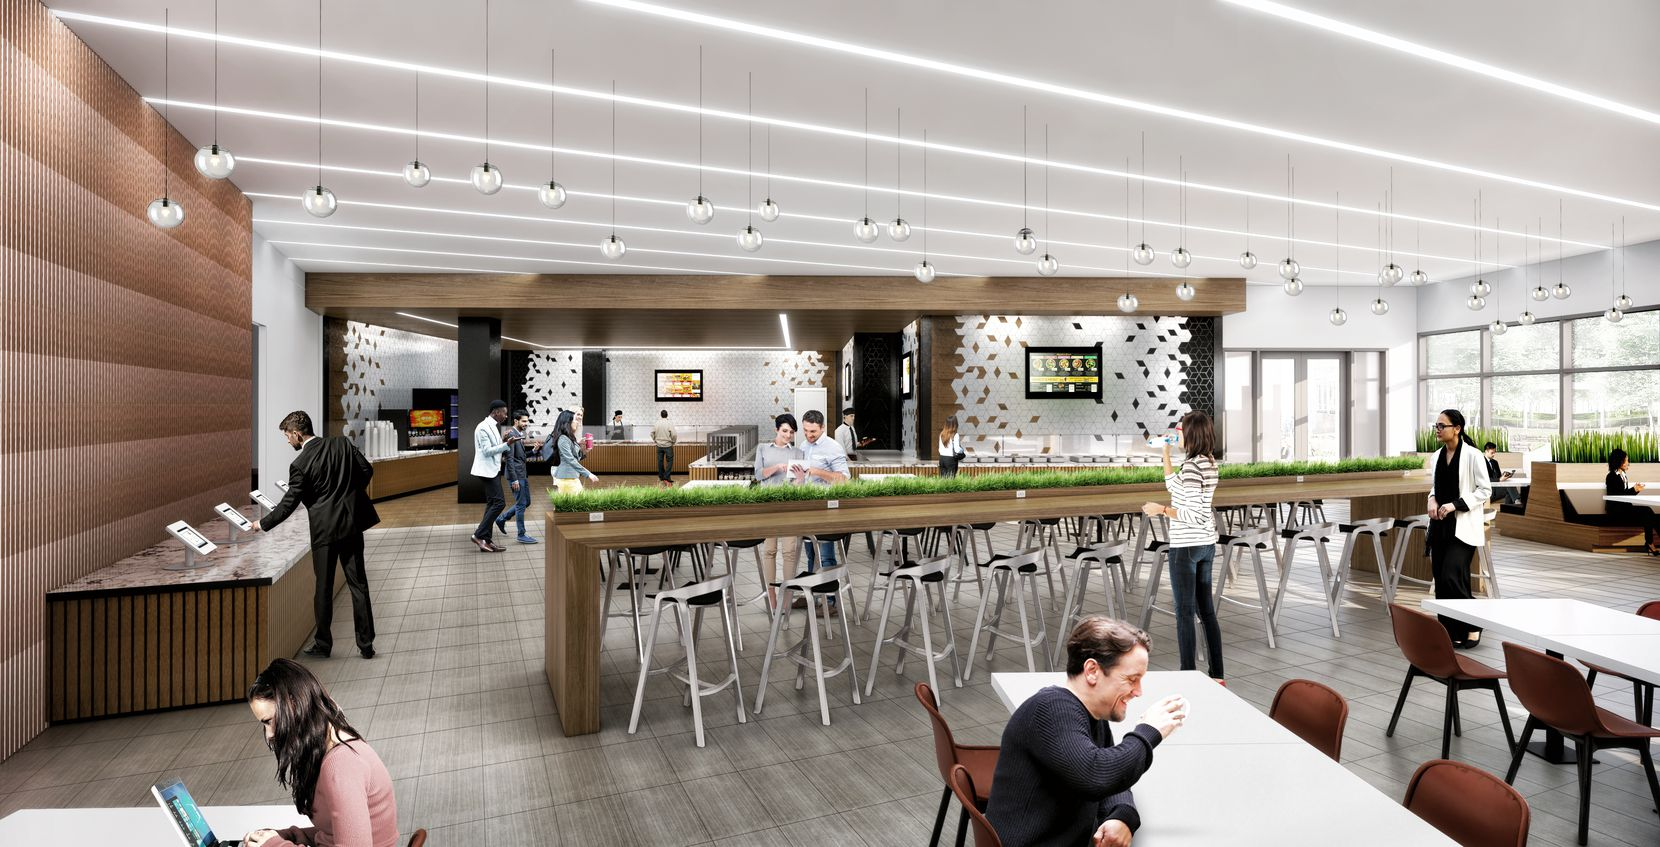 The redo will include a new food hall.